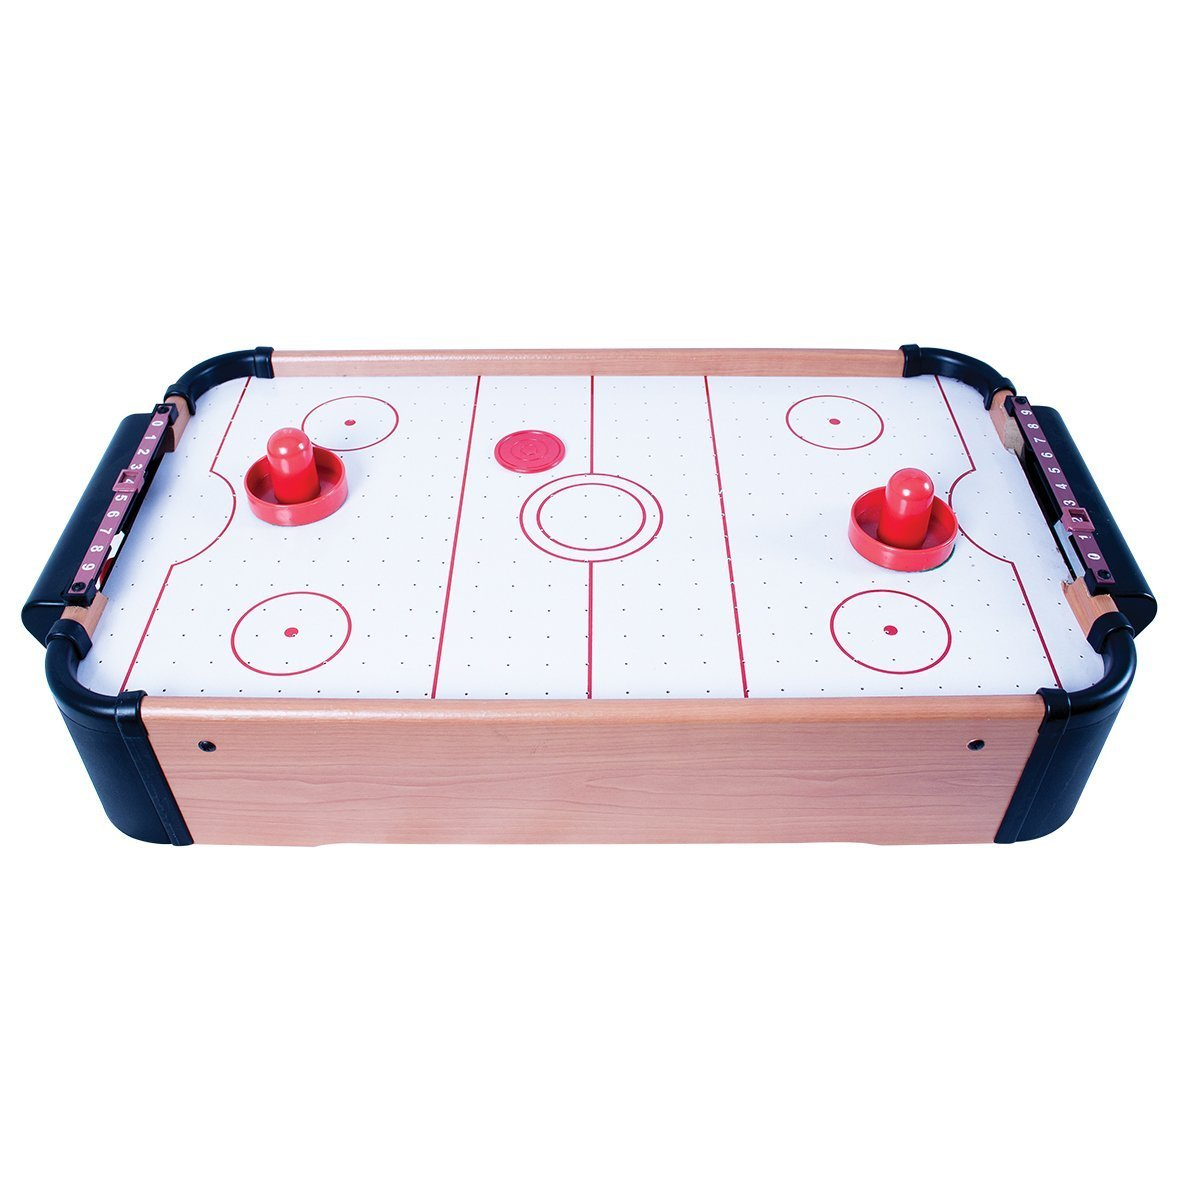 LETTUCE EAT ® TABLE TOP AIR HOCKEY GAME INCLUDES FREE BATTERIES GREAT CHRISTMAS PRESENT FOR ADULTS AND CHILDREN LETTUCE EAT®